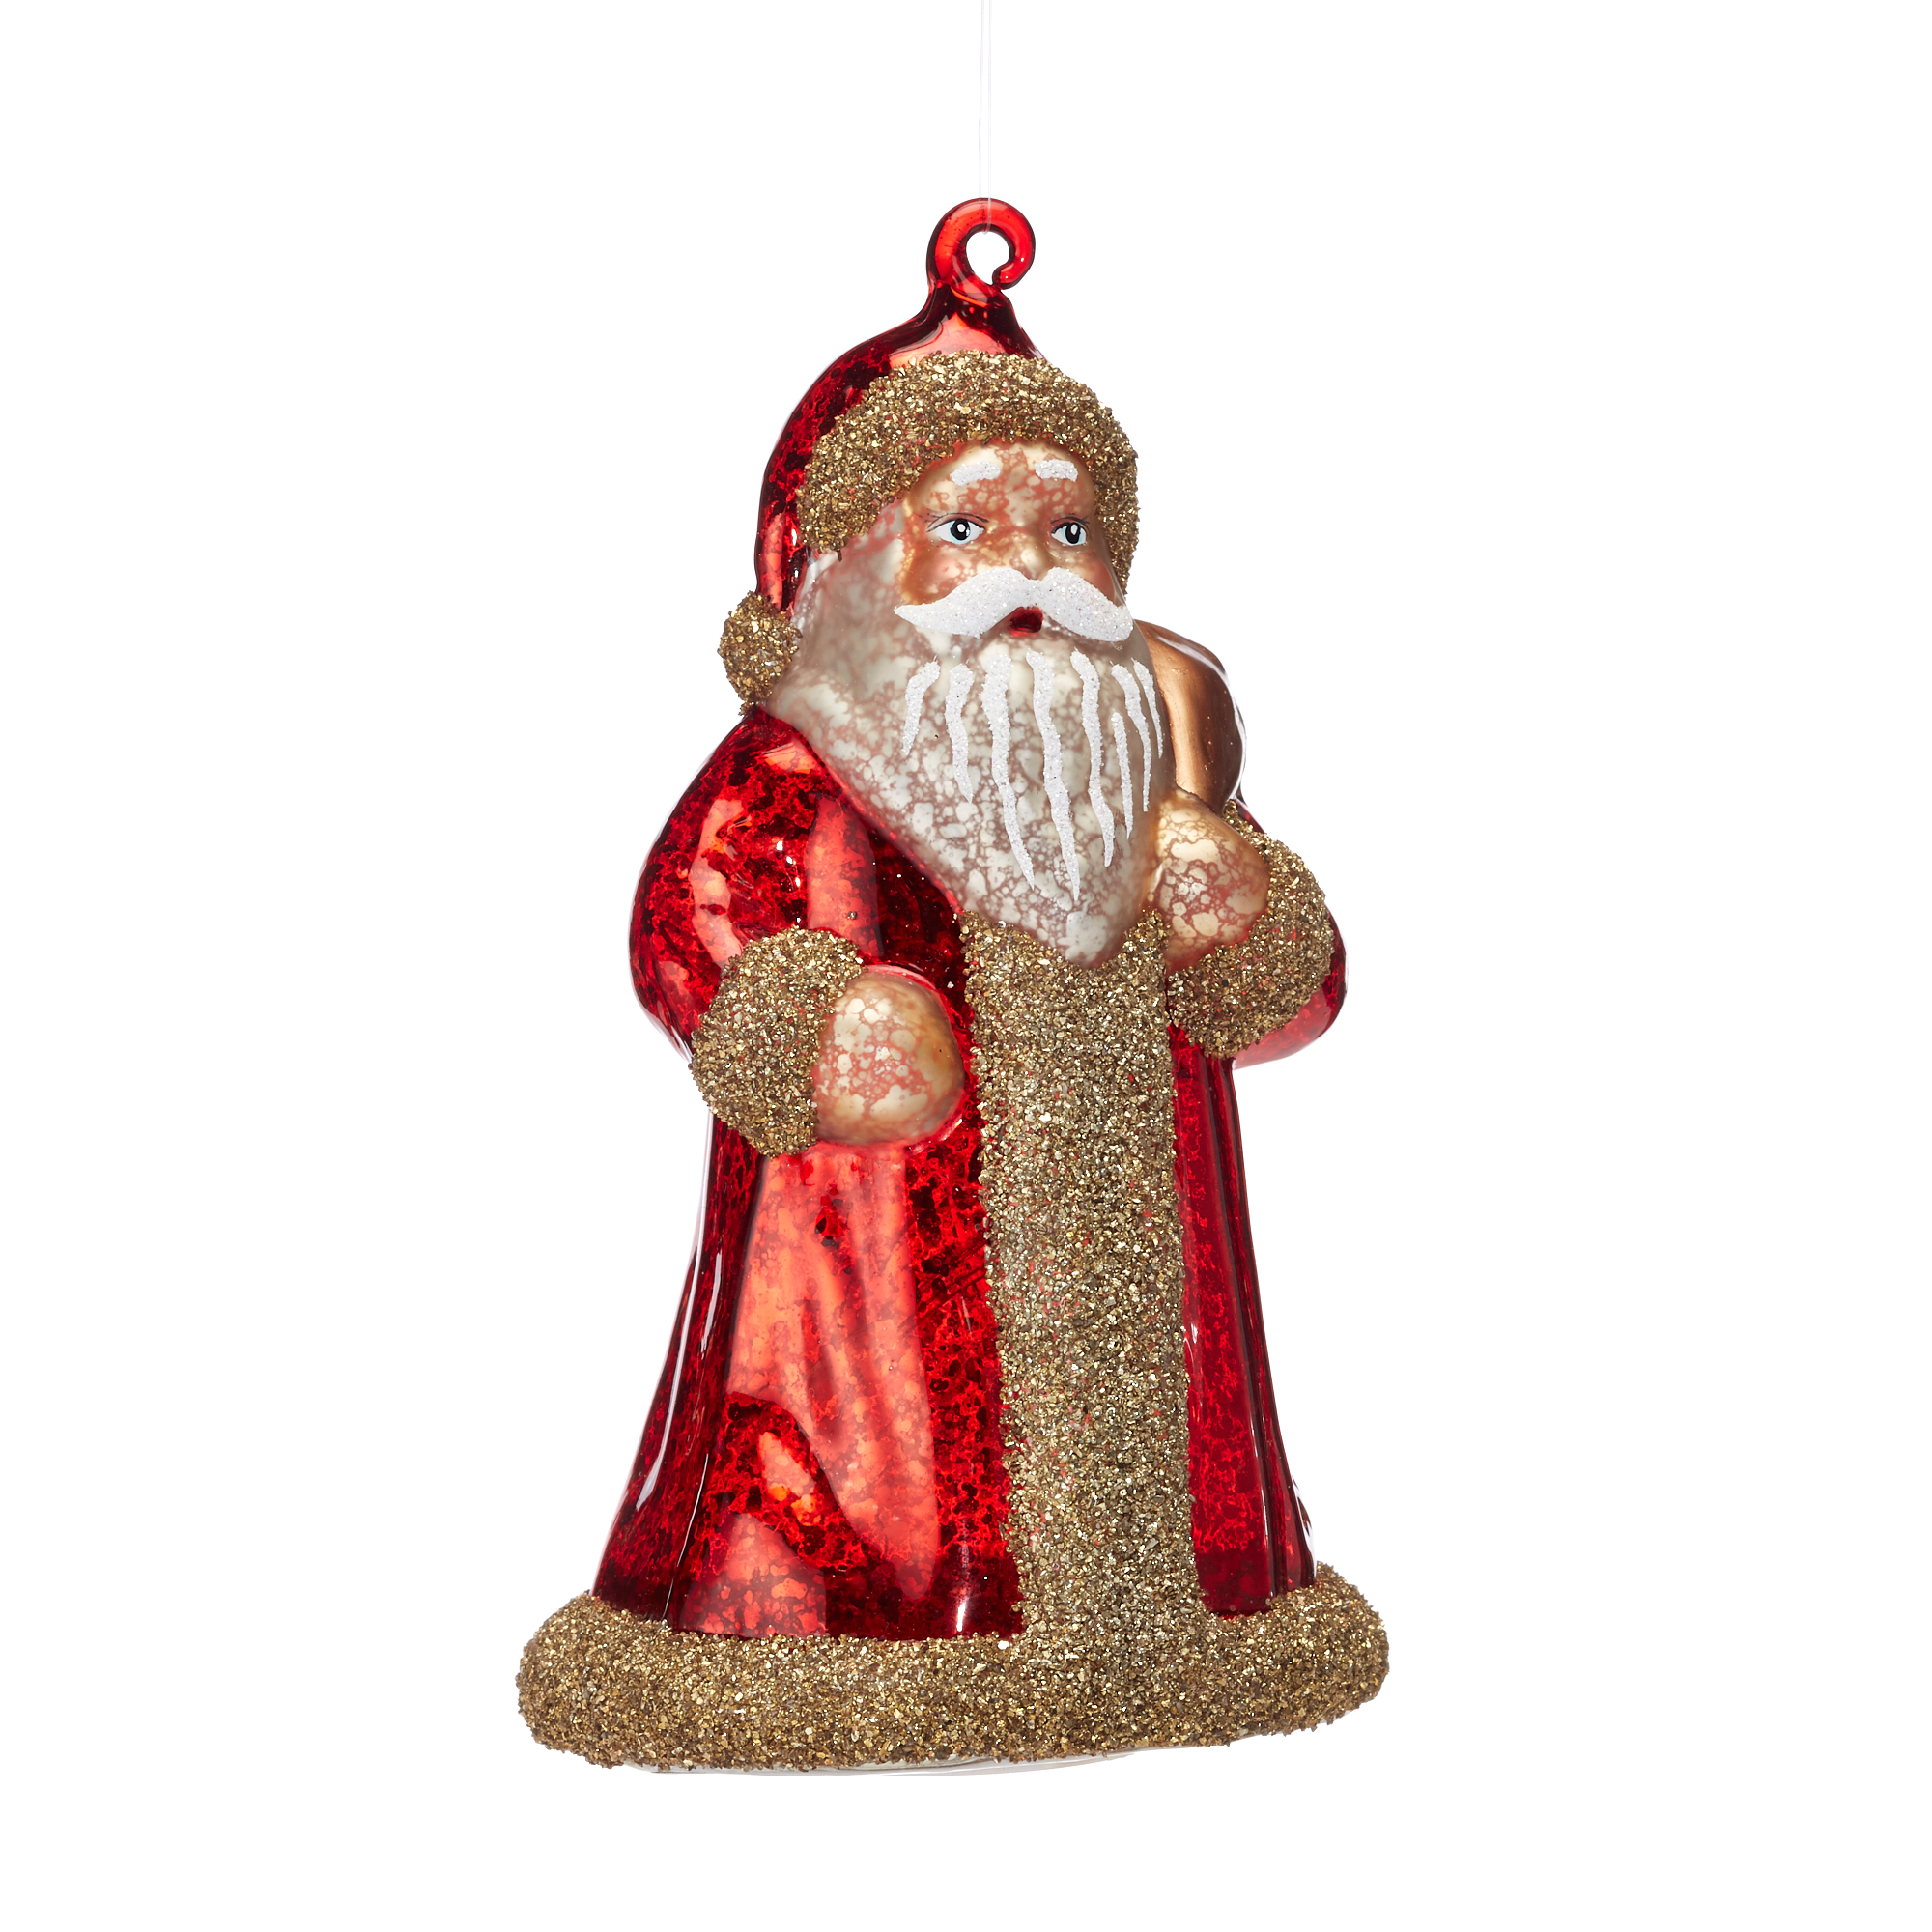 Lighted Santa Ornament